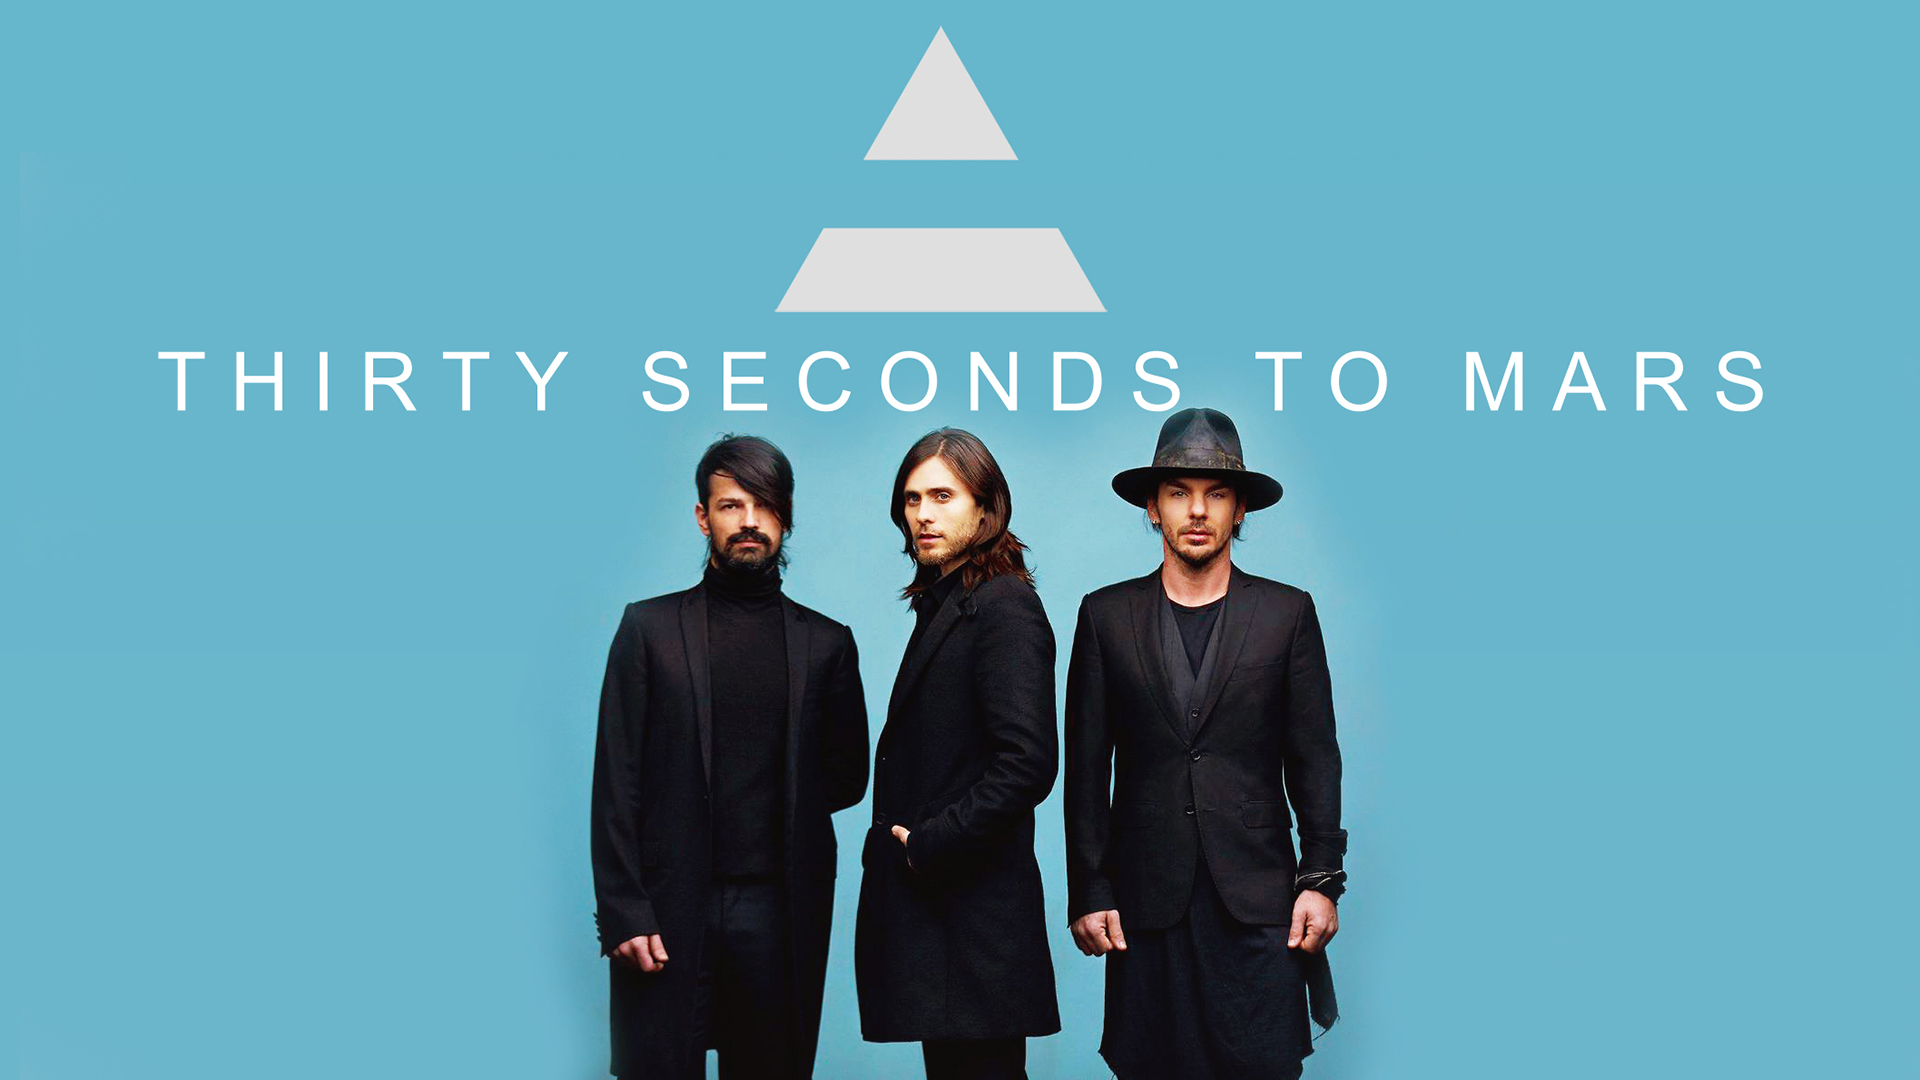 Jared Leto 30 Seconds To Mars Wallpaper 30 Seconds to Mars Jar...